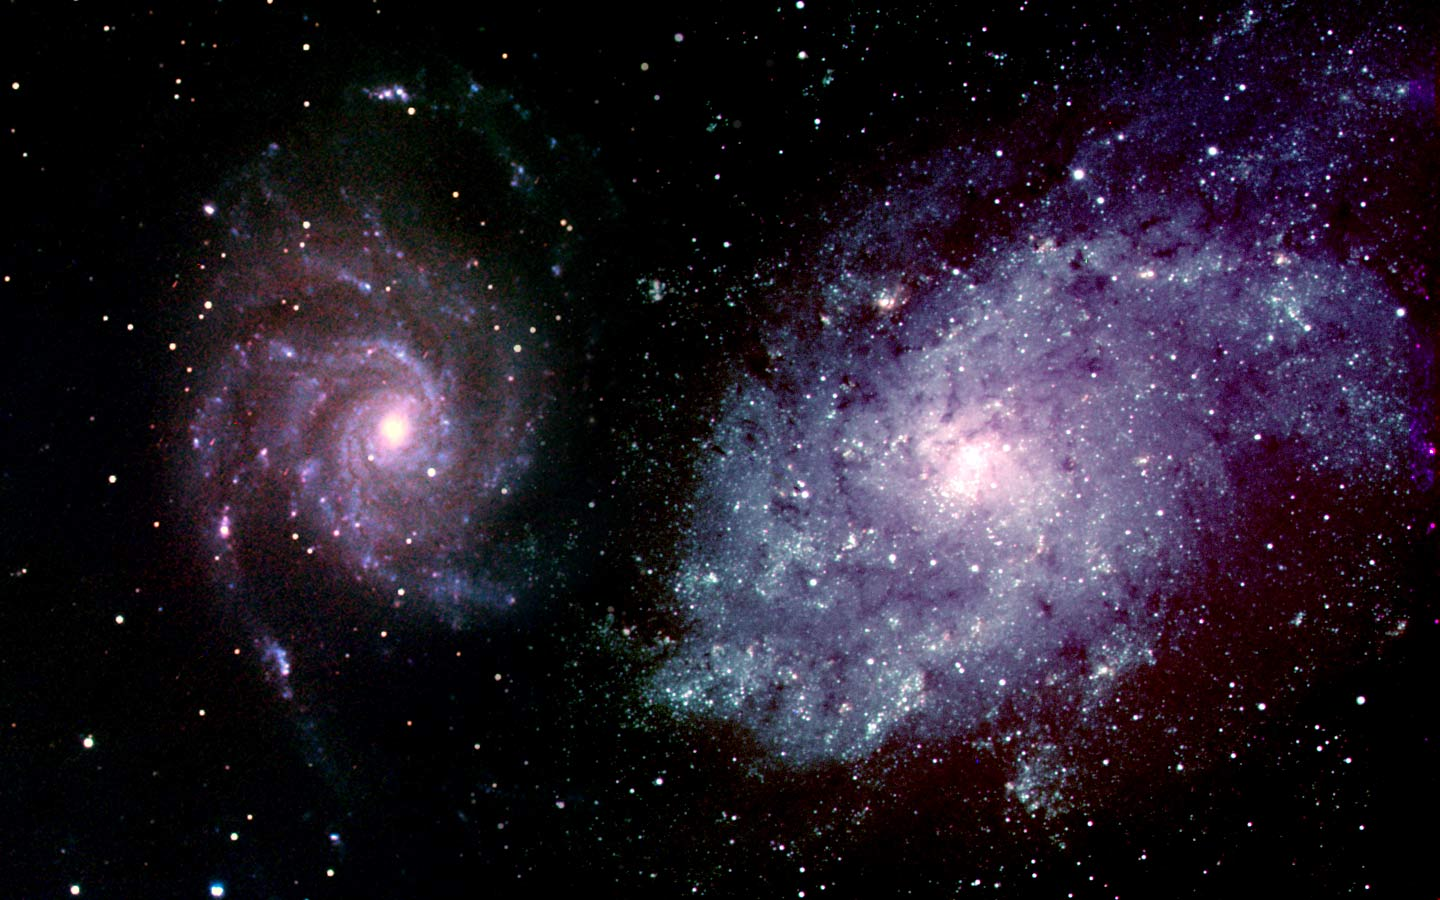 Images of galaxies m33 and m101 in this composite image.